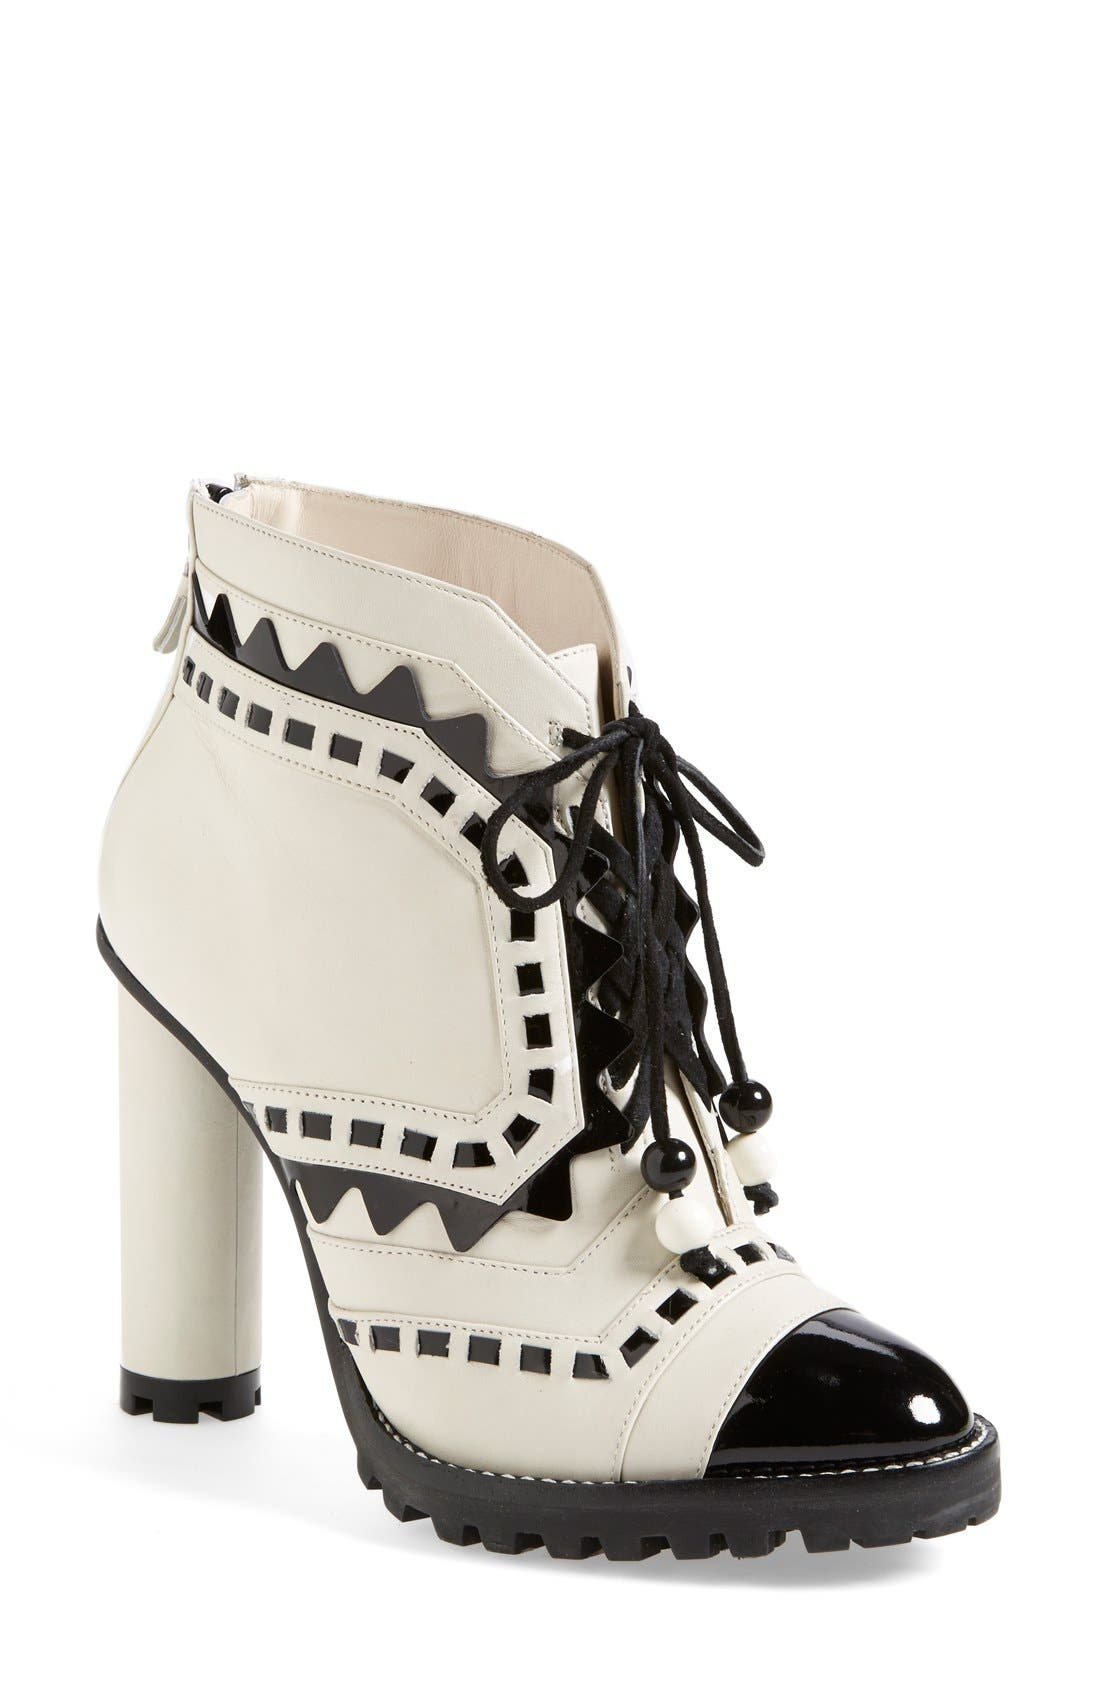 SOPHIA WEBSTER 'Riko' Leather Boot, Main, color, 100